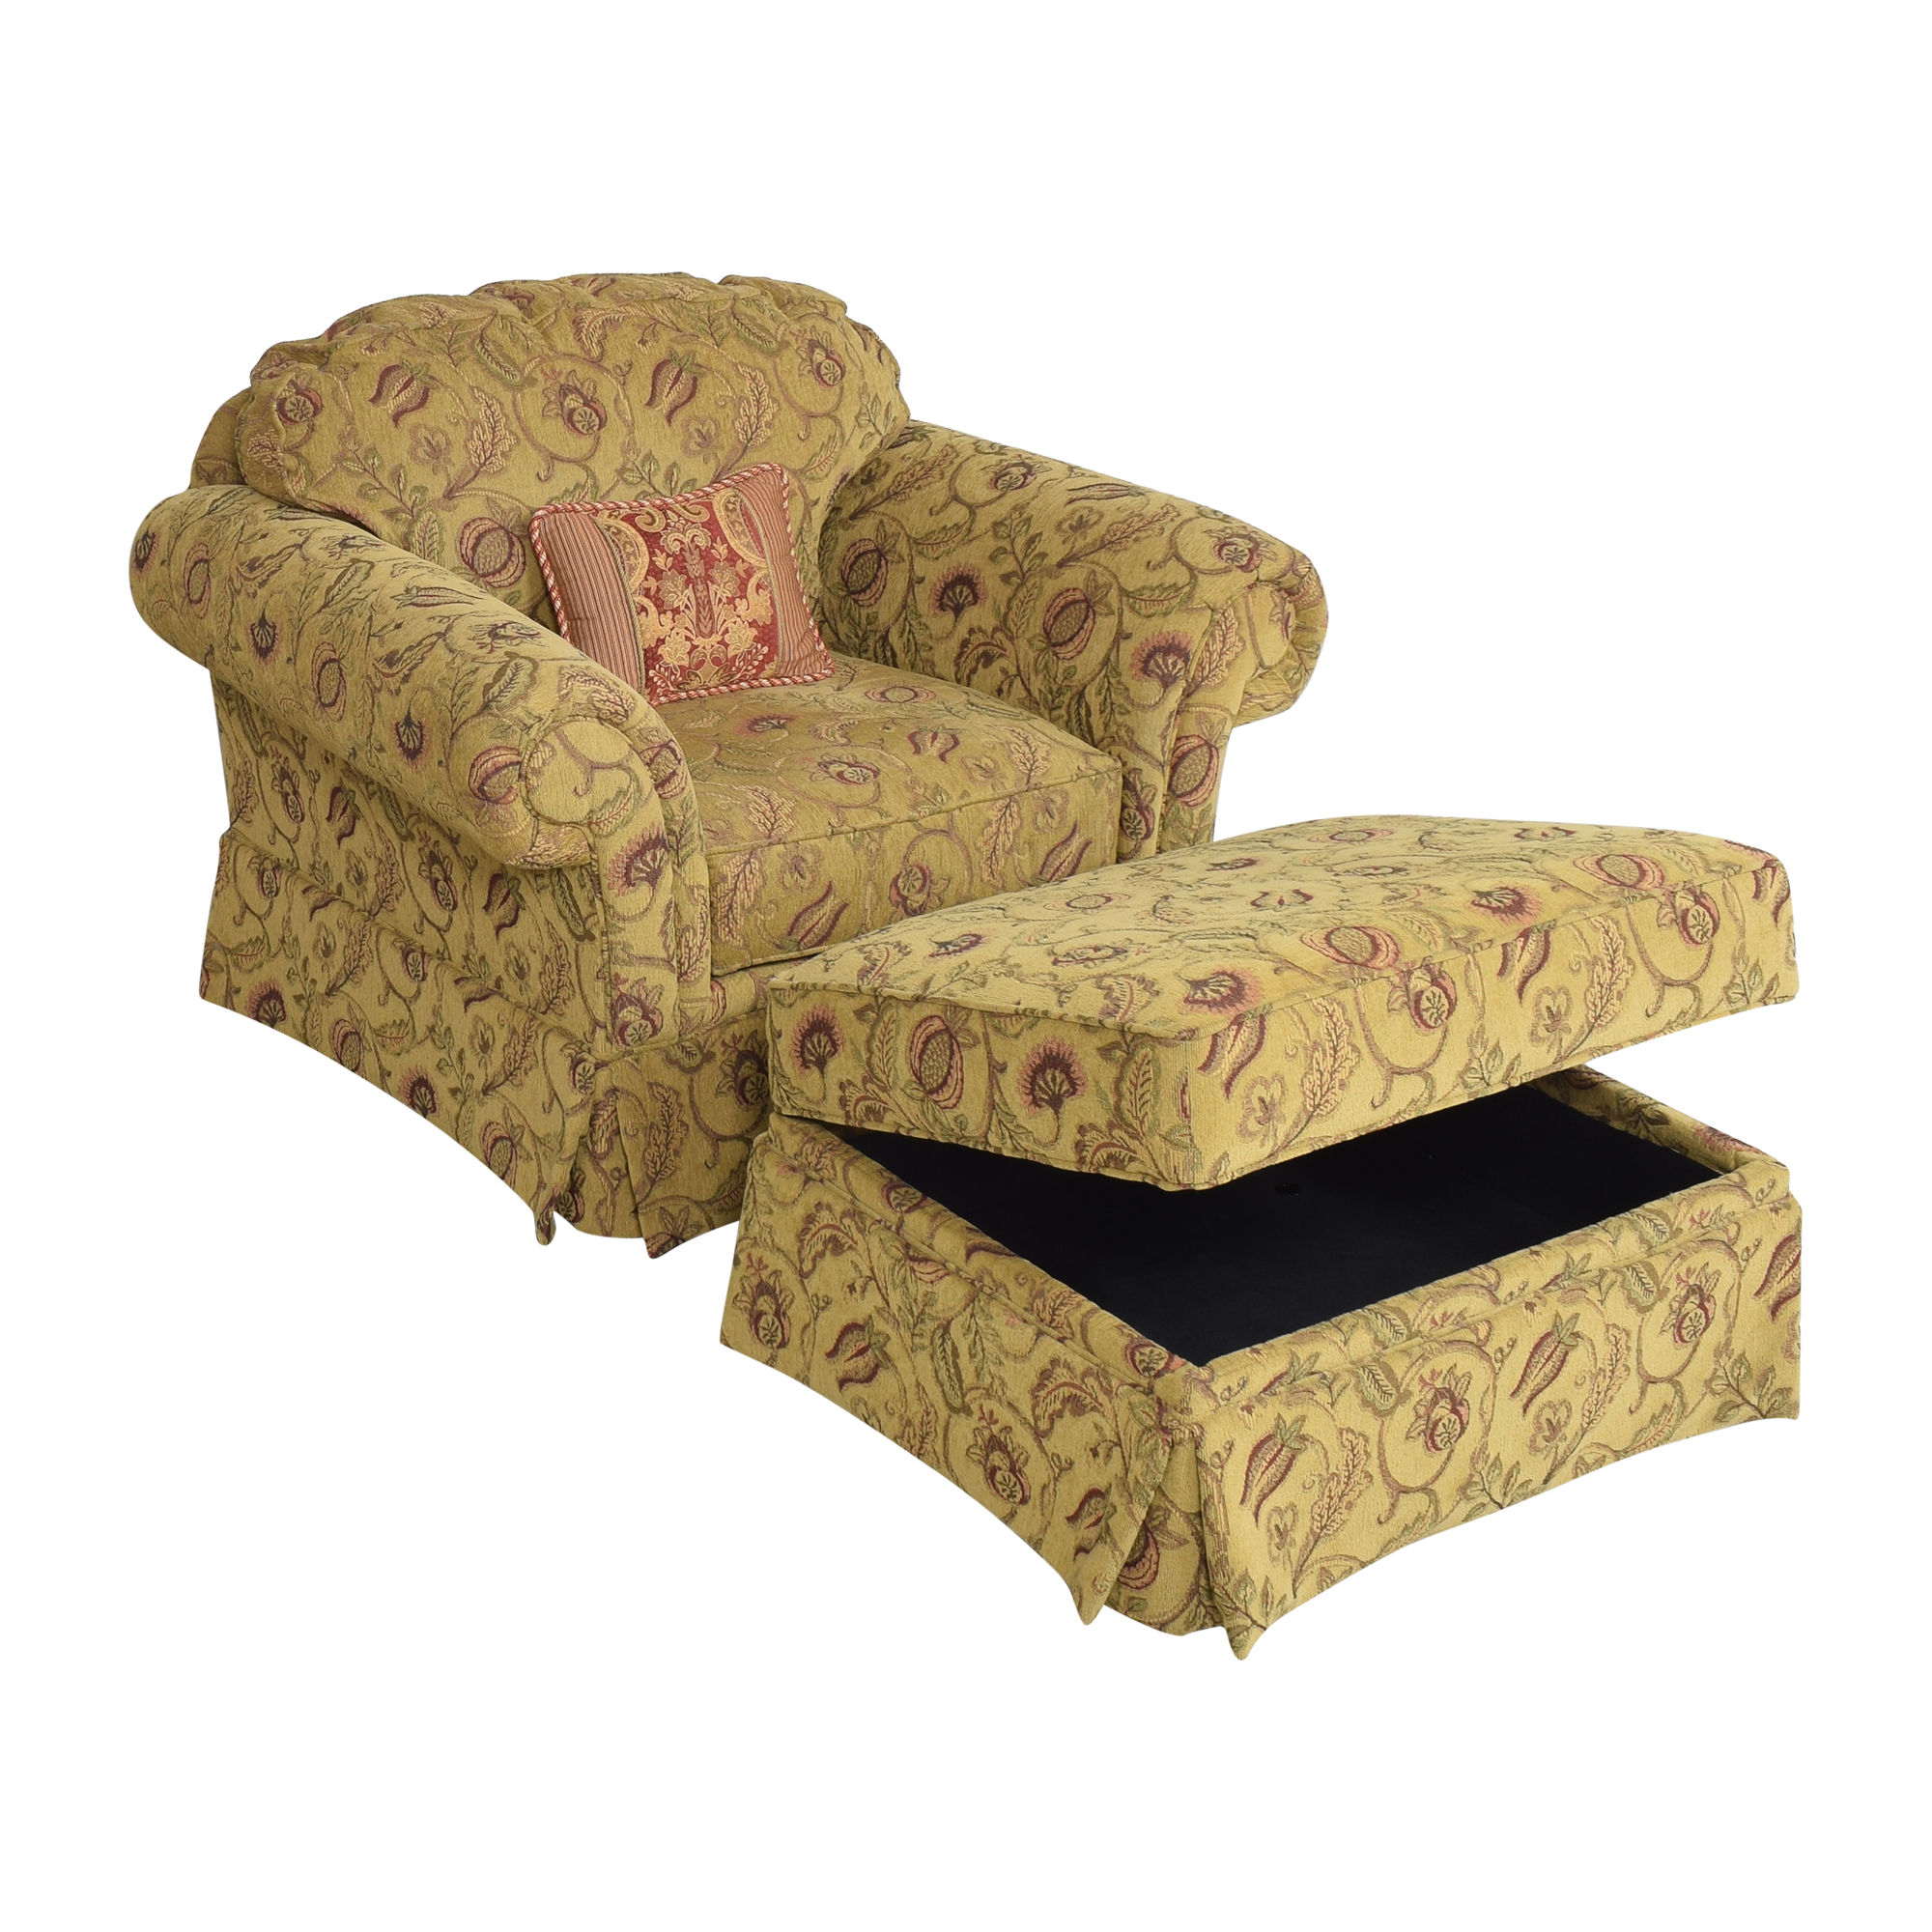 Broyhill Furniture Broyhill Furniture Roll Arm Chair with Ottoman ct